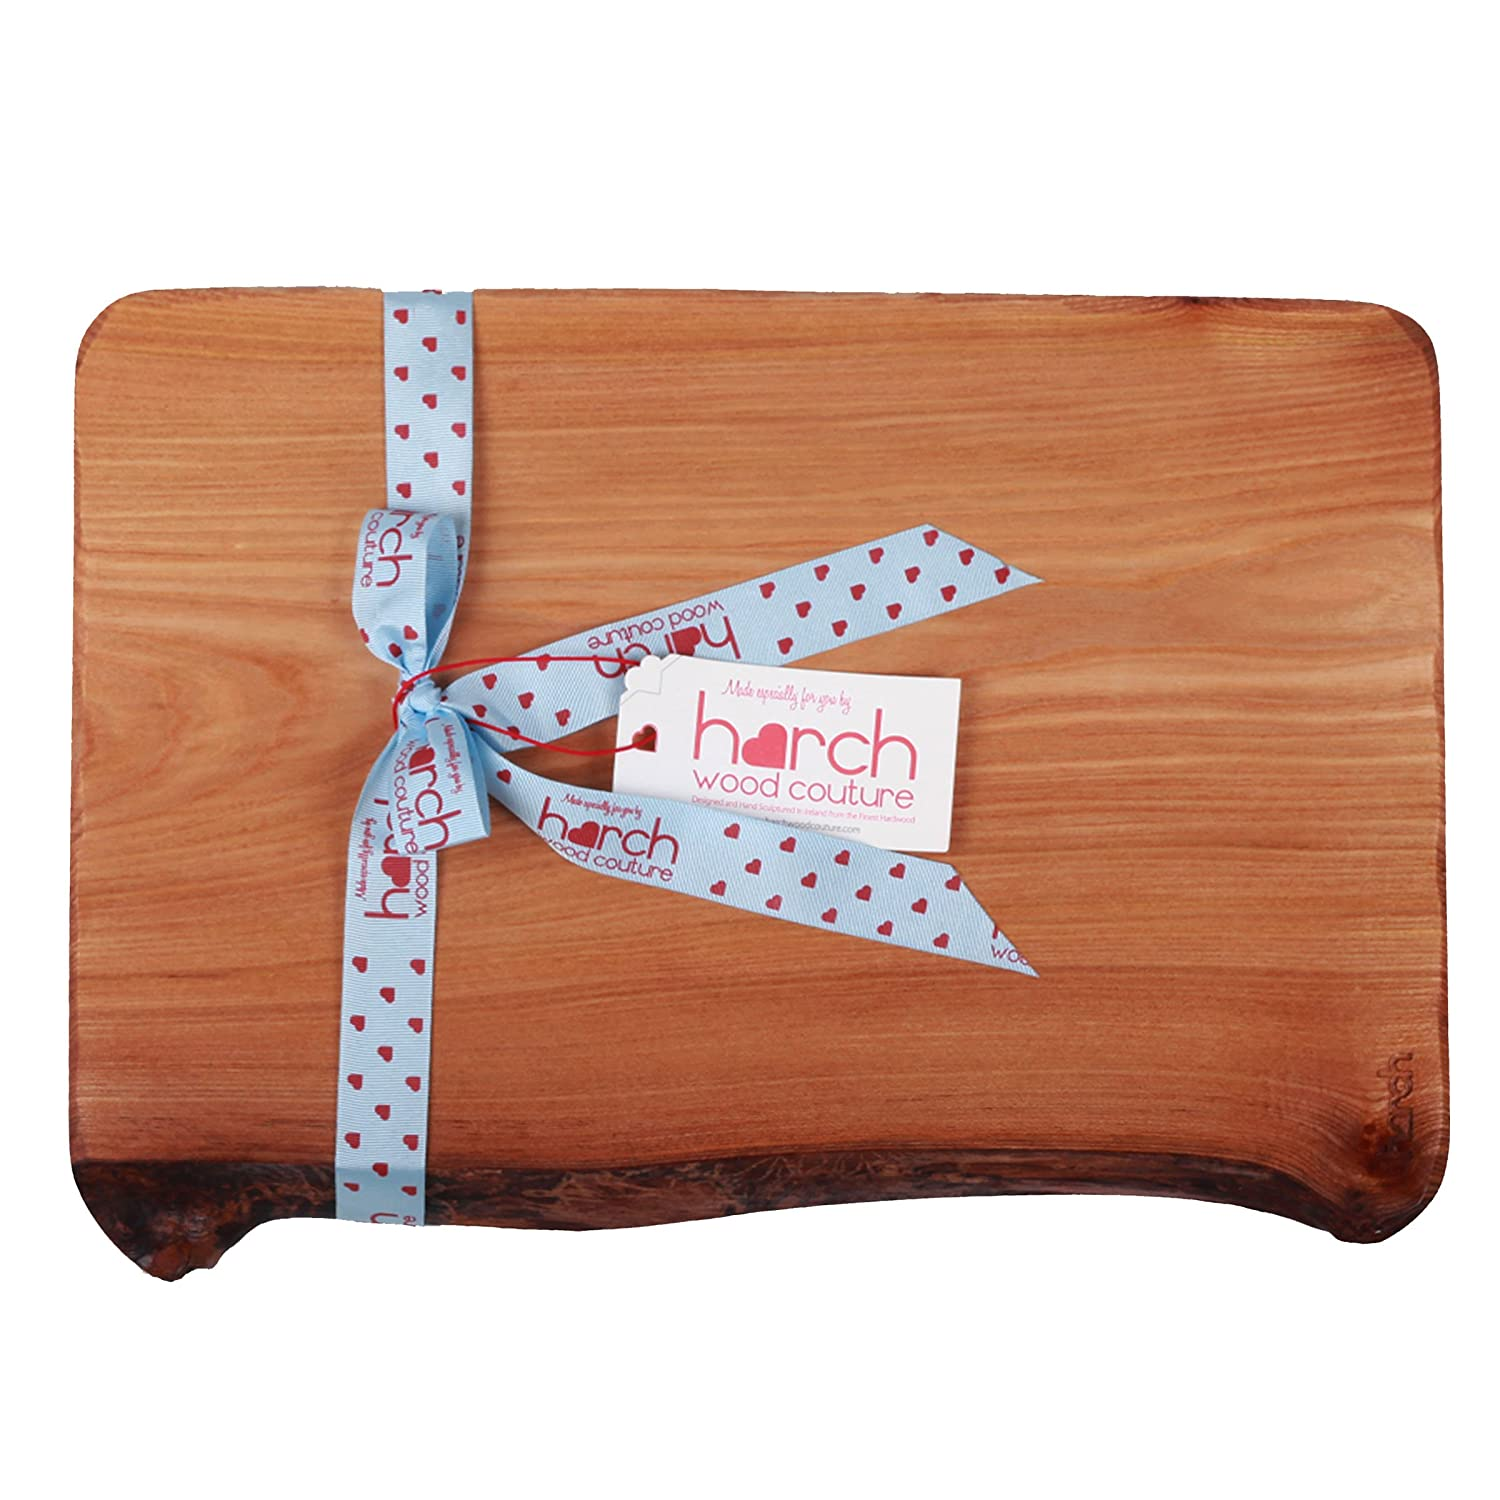 Harch Wood Couture Designer Chopping Serving Display Board, Wood, Medium/Dark Wood COAS-AE